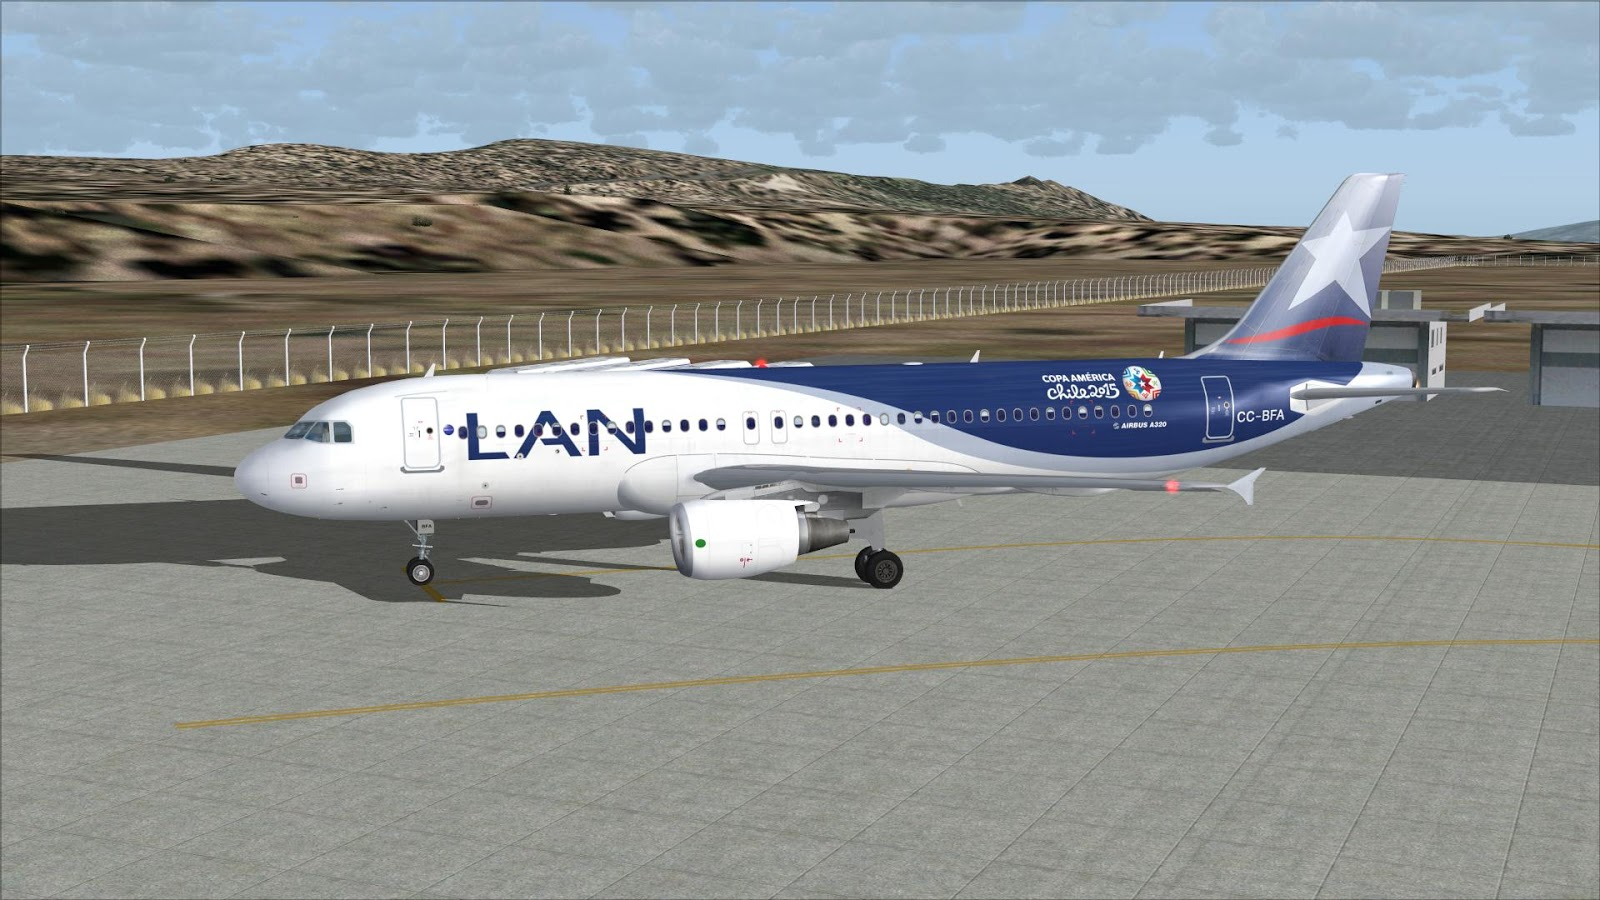 Fs2004 Repaints Project Airbus A320 200 Lan Airlines Cc